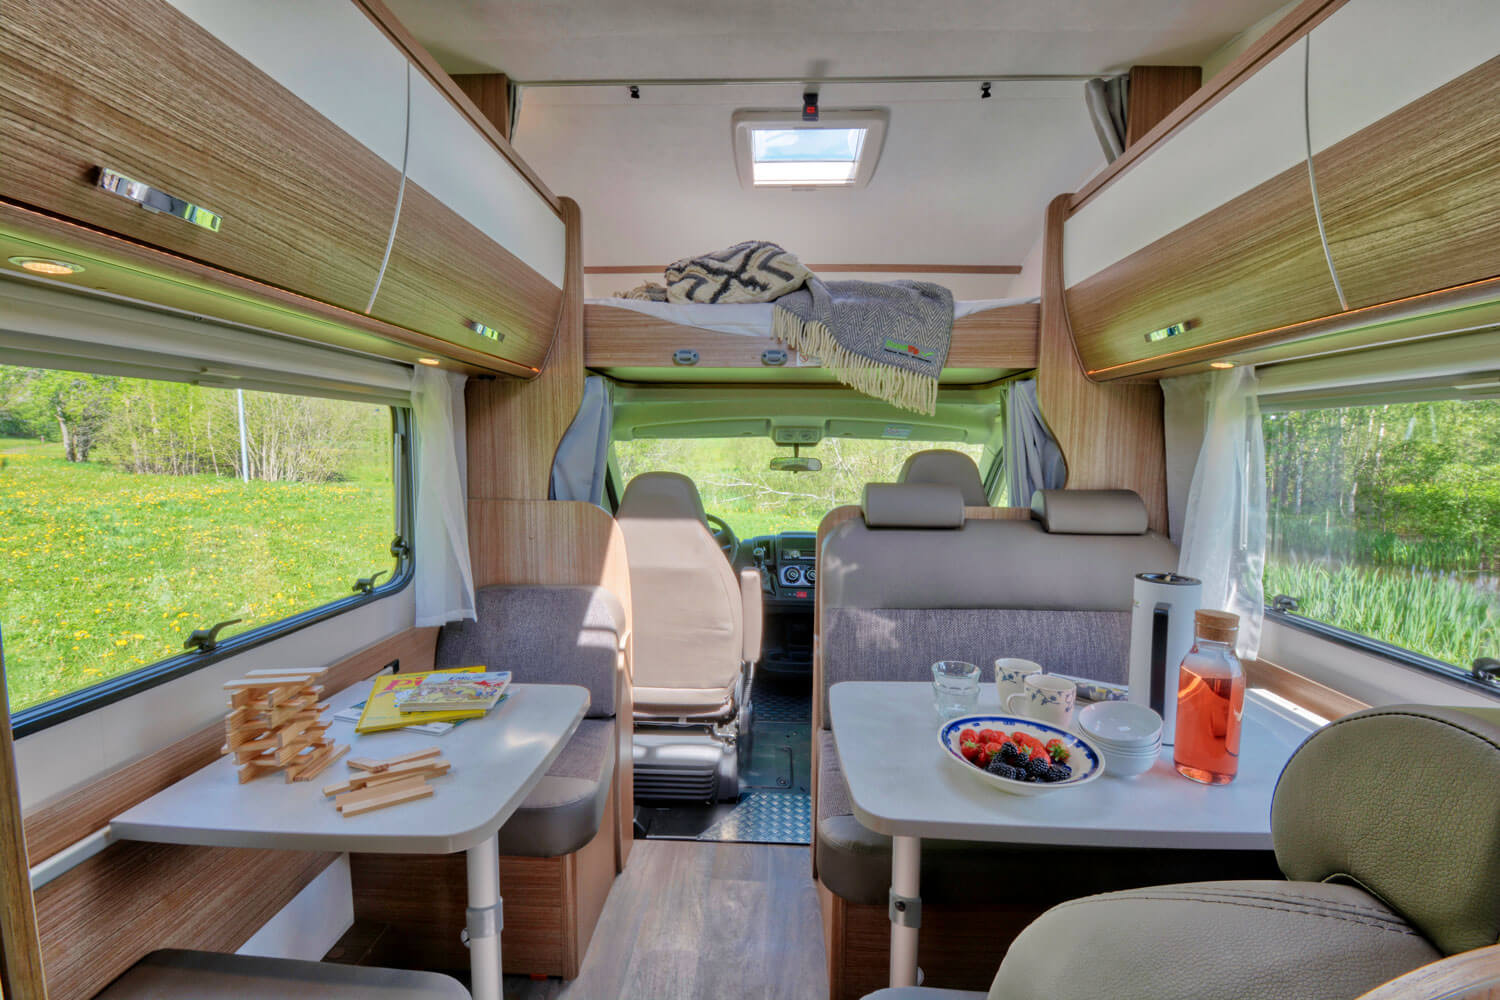 SkandiTrip family plus motorhome great spaces